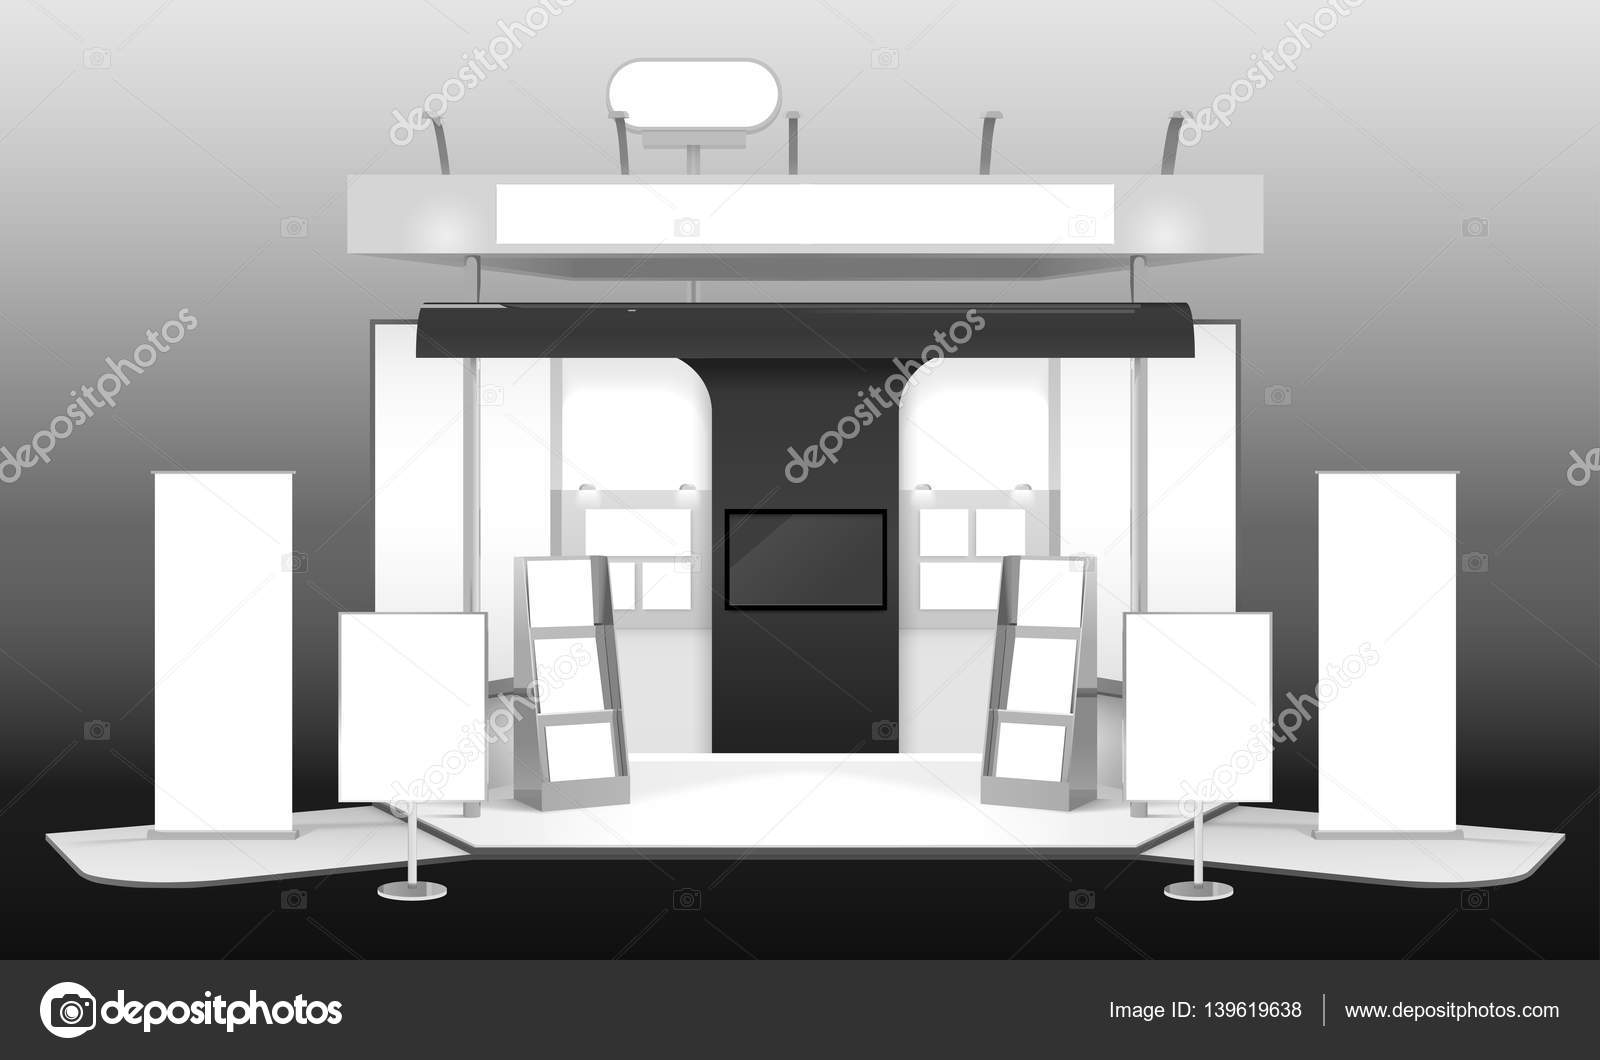 Exhibition Stand Design Illustrator : Exhibition stand d design mockup — stock vector